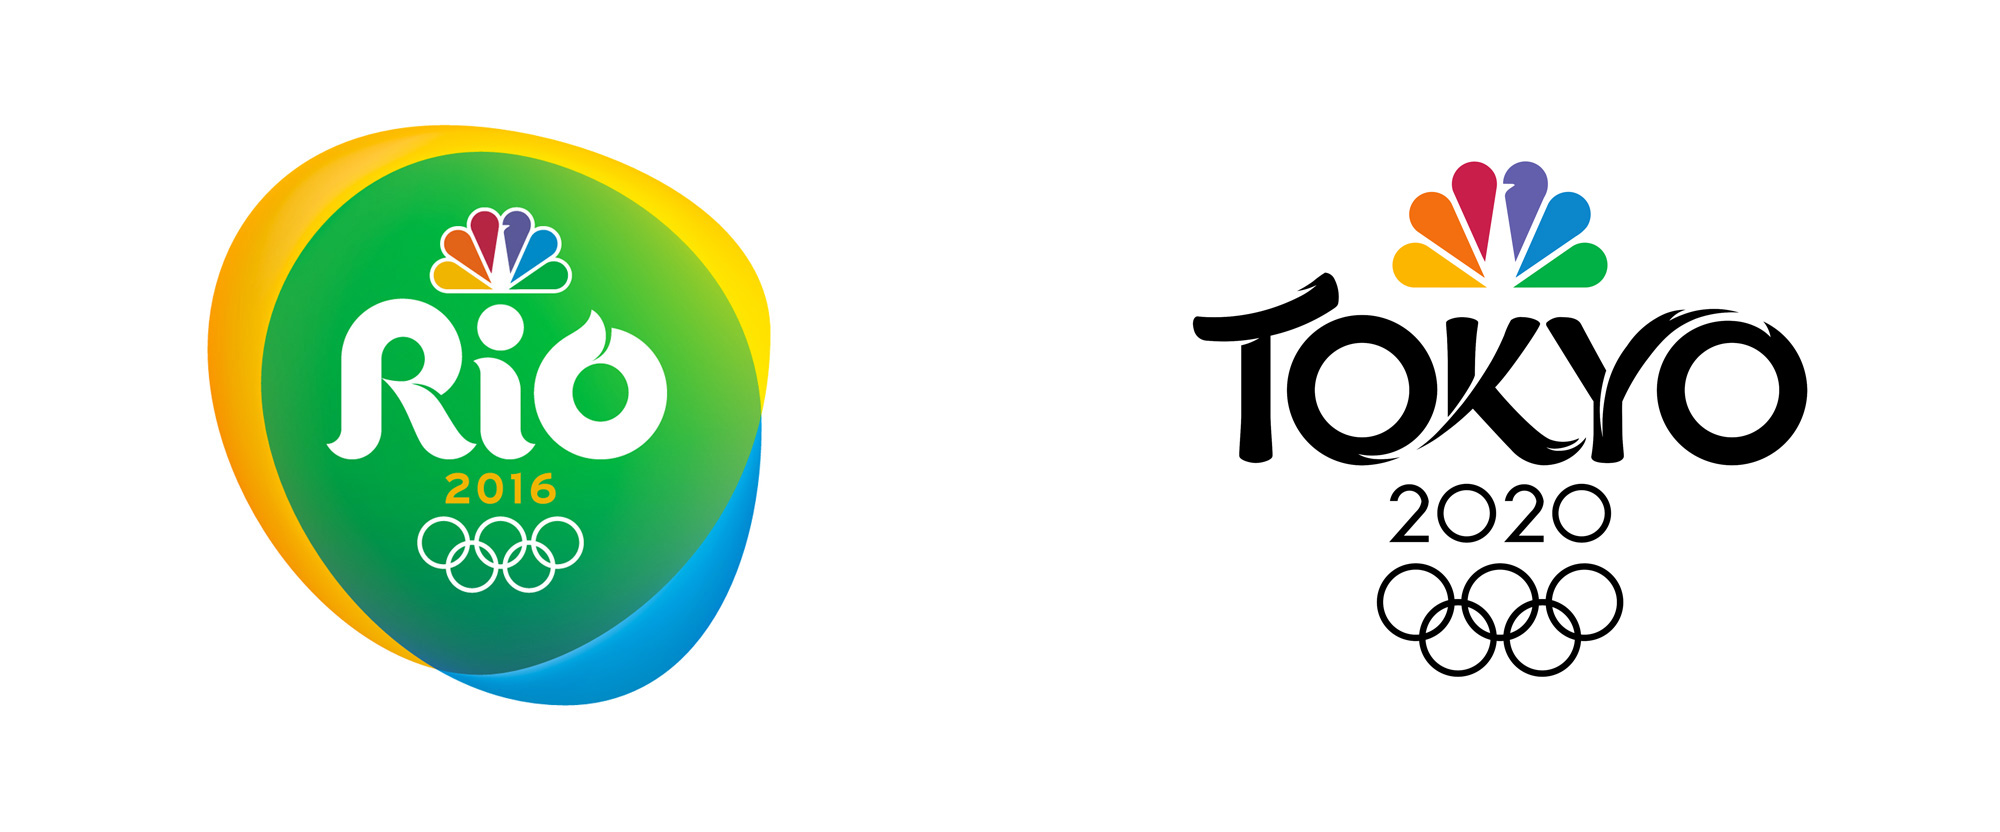 Brand New: New Logo for NBC Olympics 2020 Broadcast by Mocean.